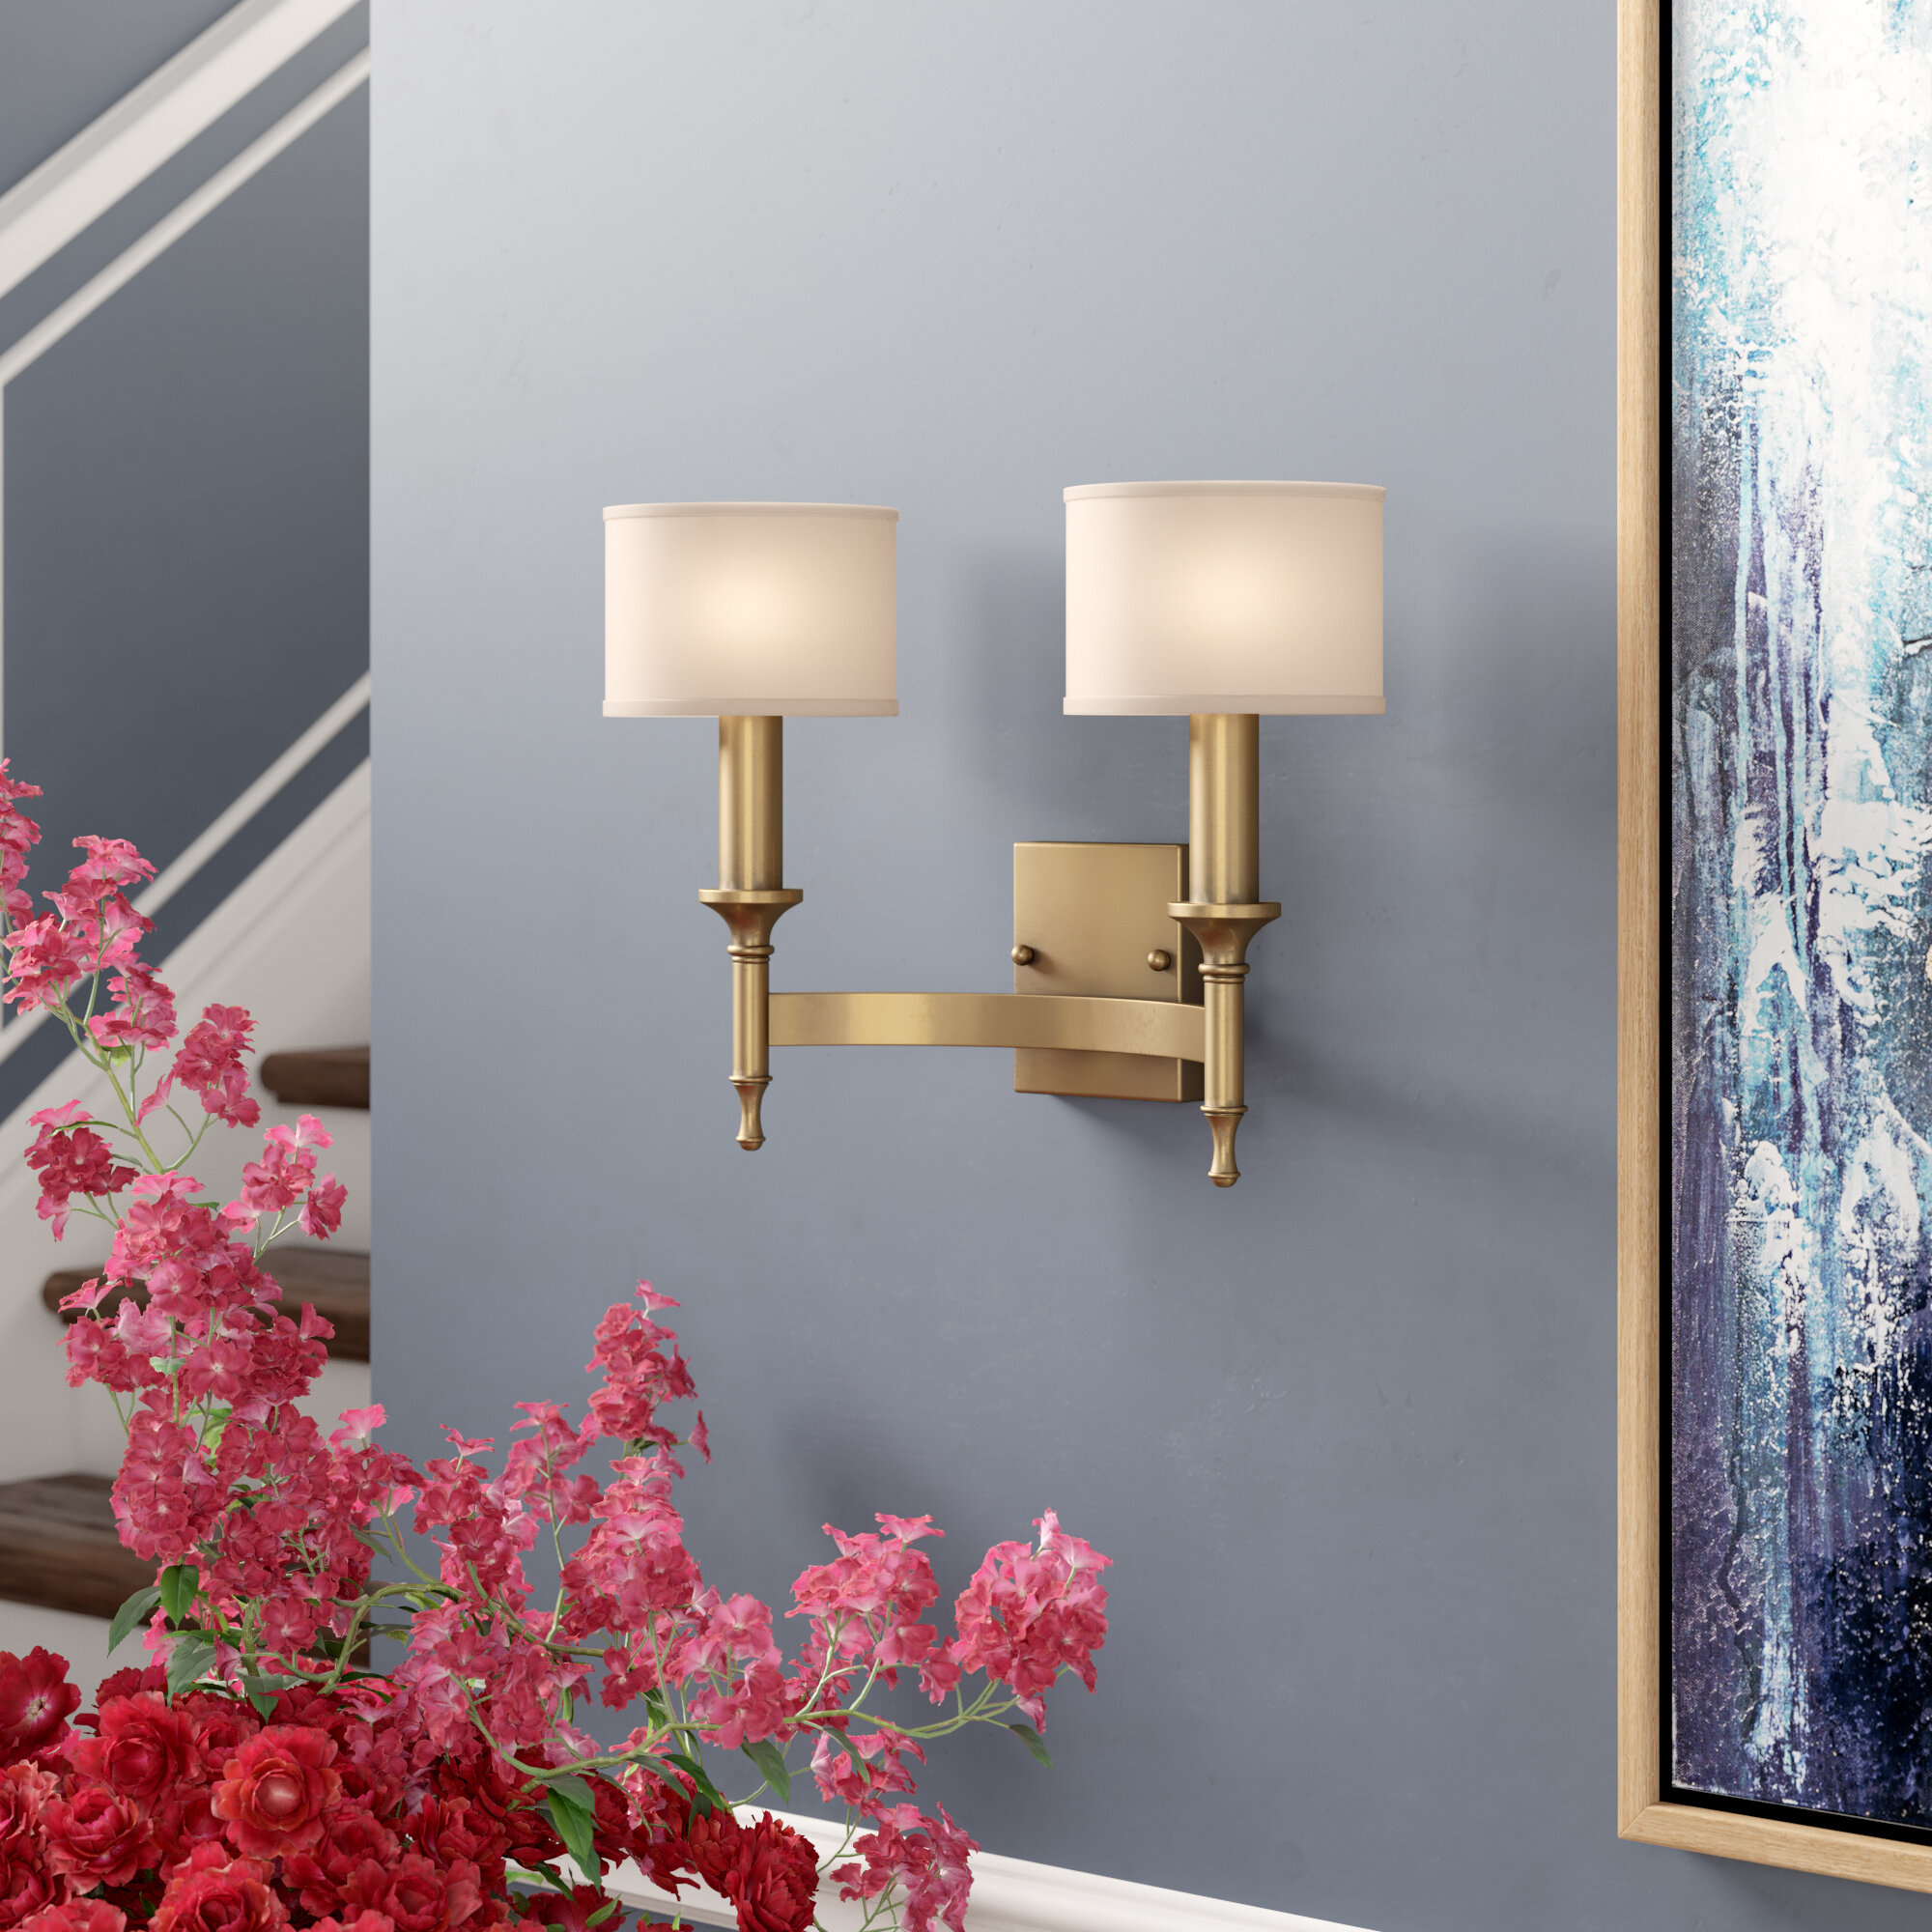 2 Antique Bronze Wall Sconces You Ll Love In 2021 Wayfair